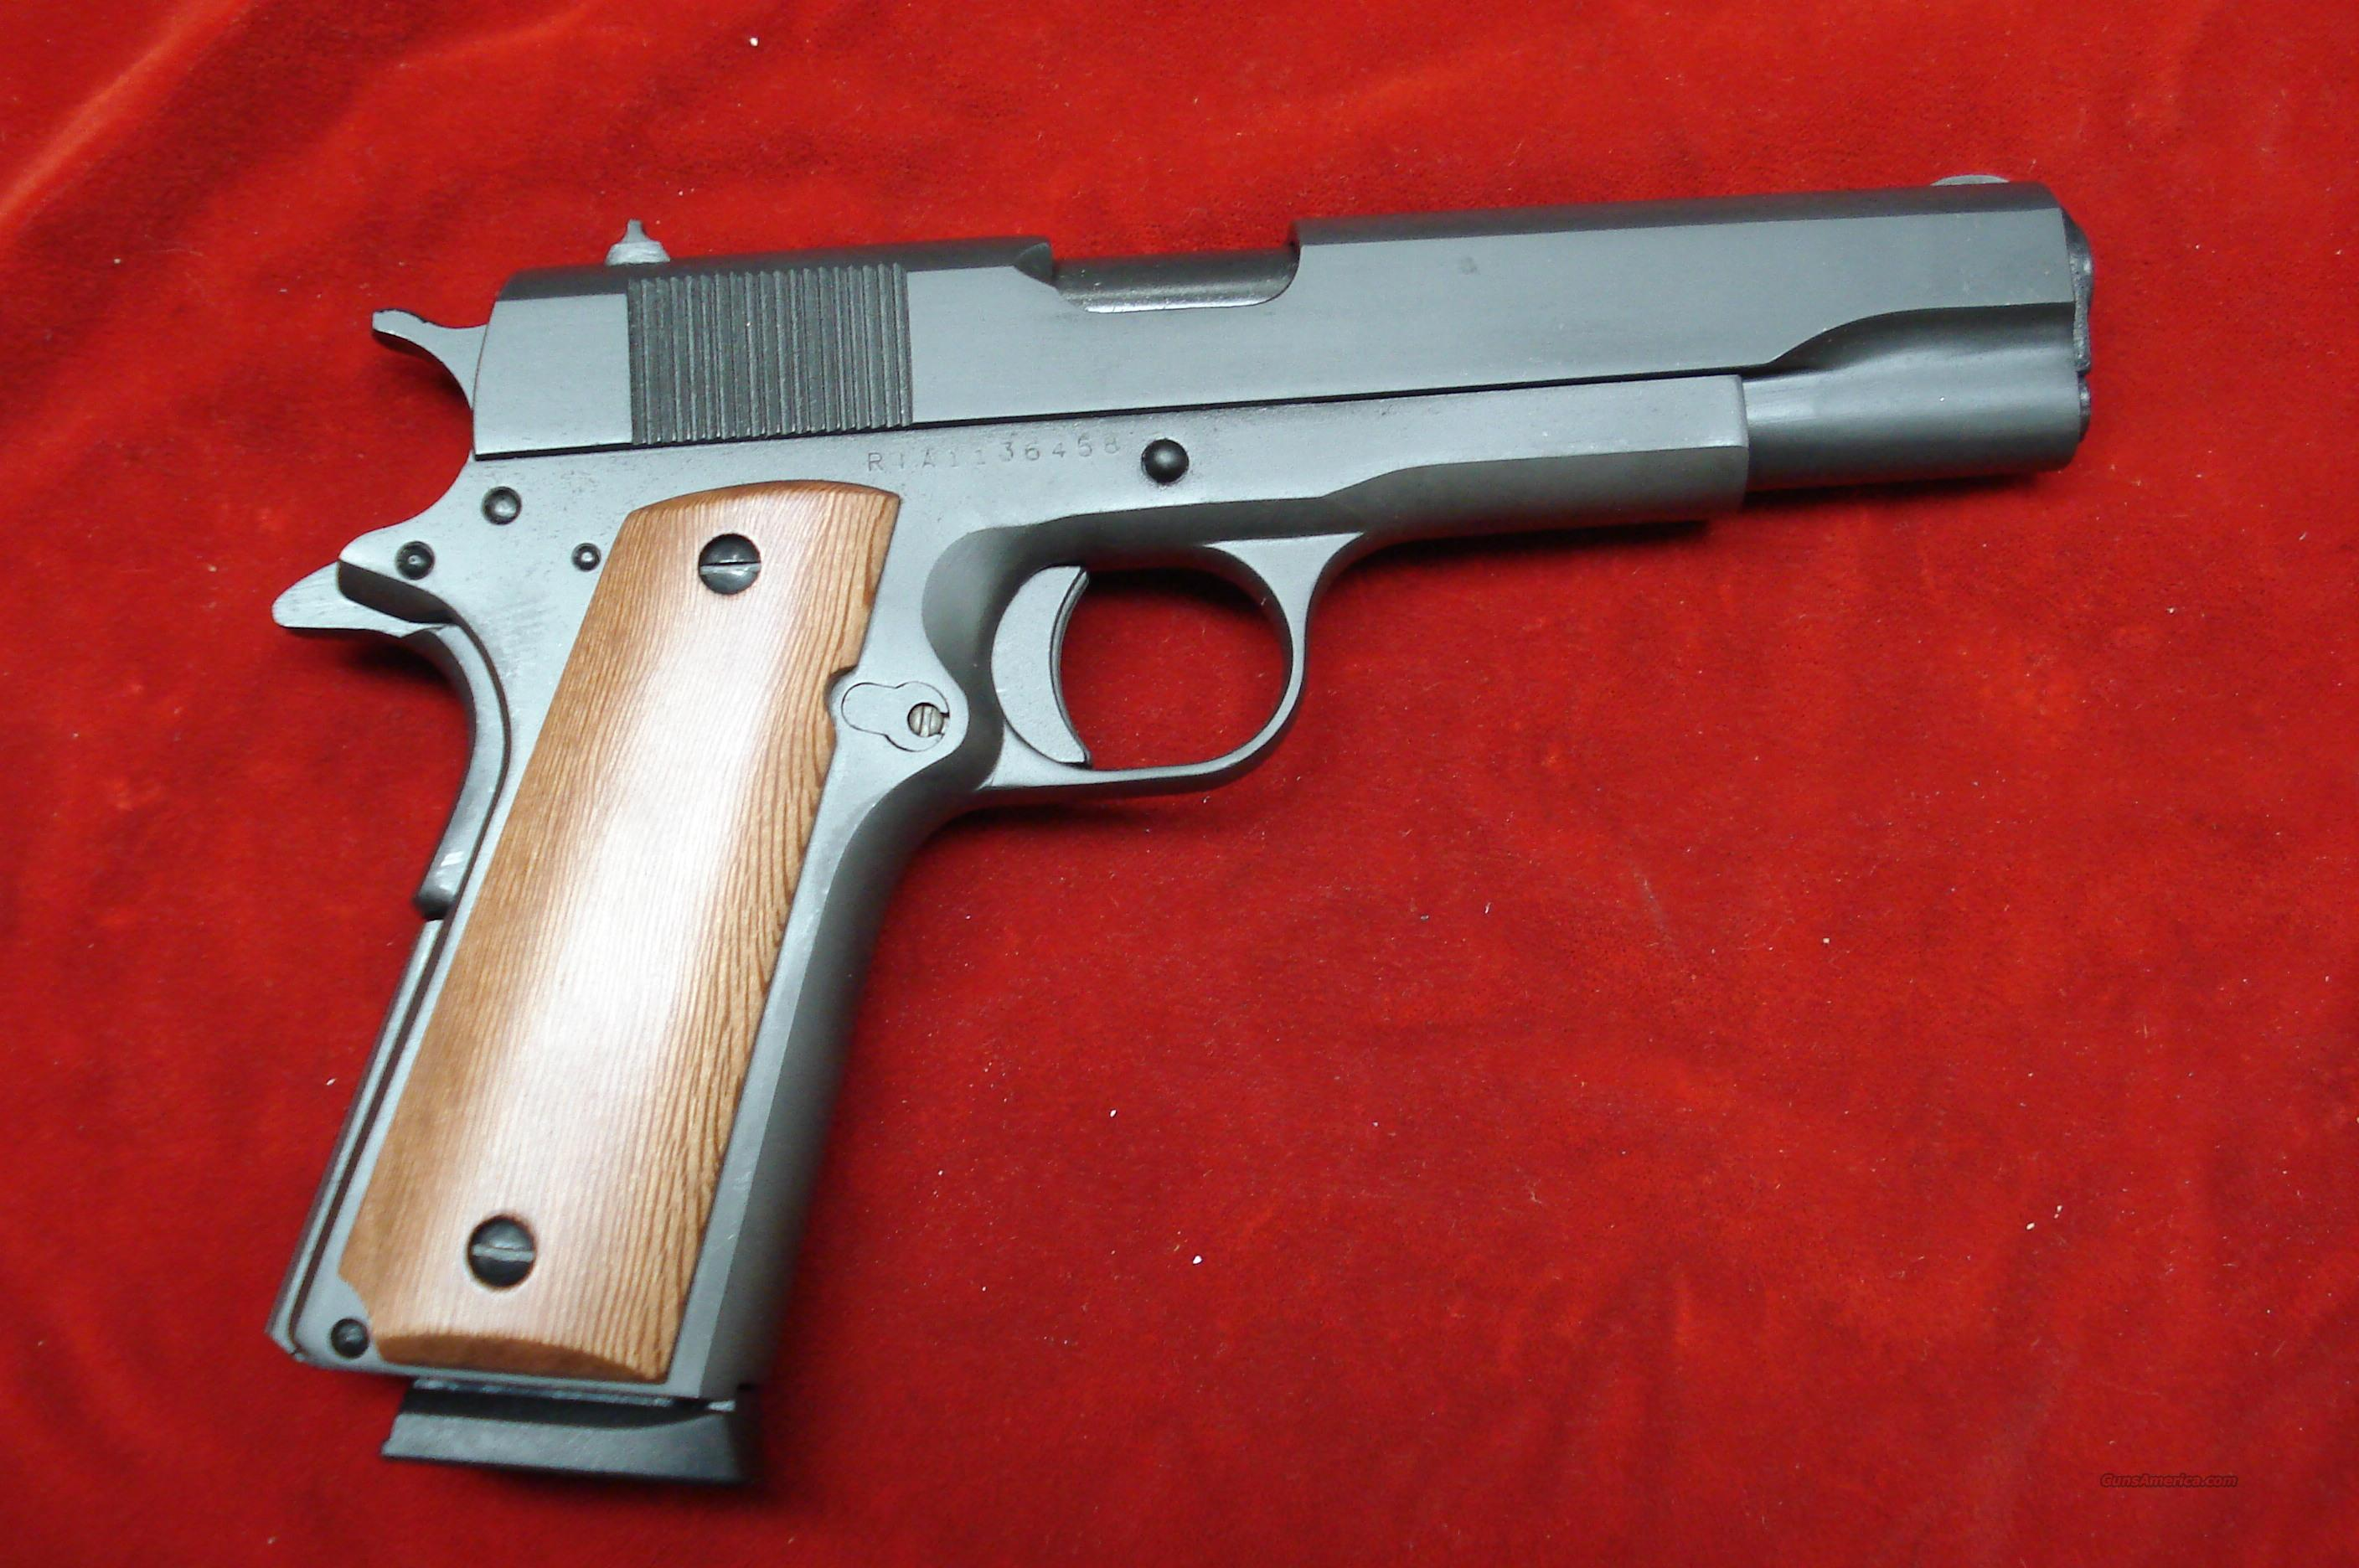 ROCK ISLAND ARMORY 1911-A1 NEW  Guns > Pistols > 1911 Pistol Copies (non-Colt)